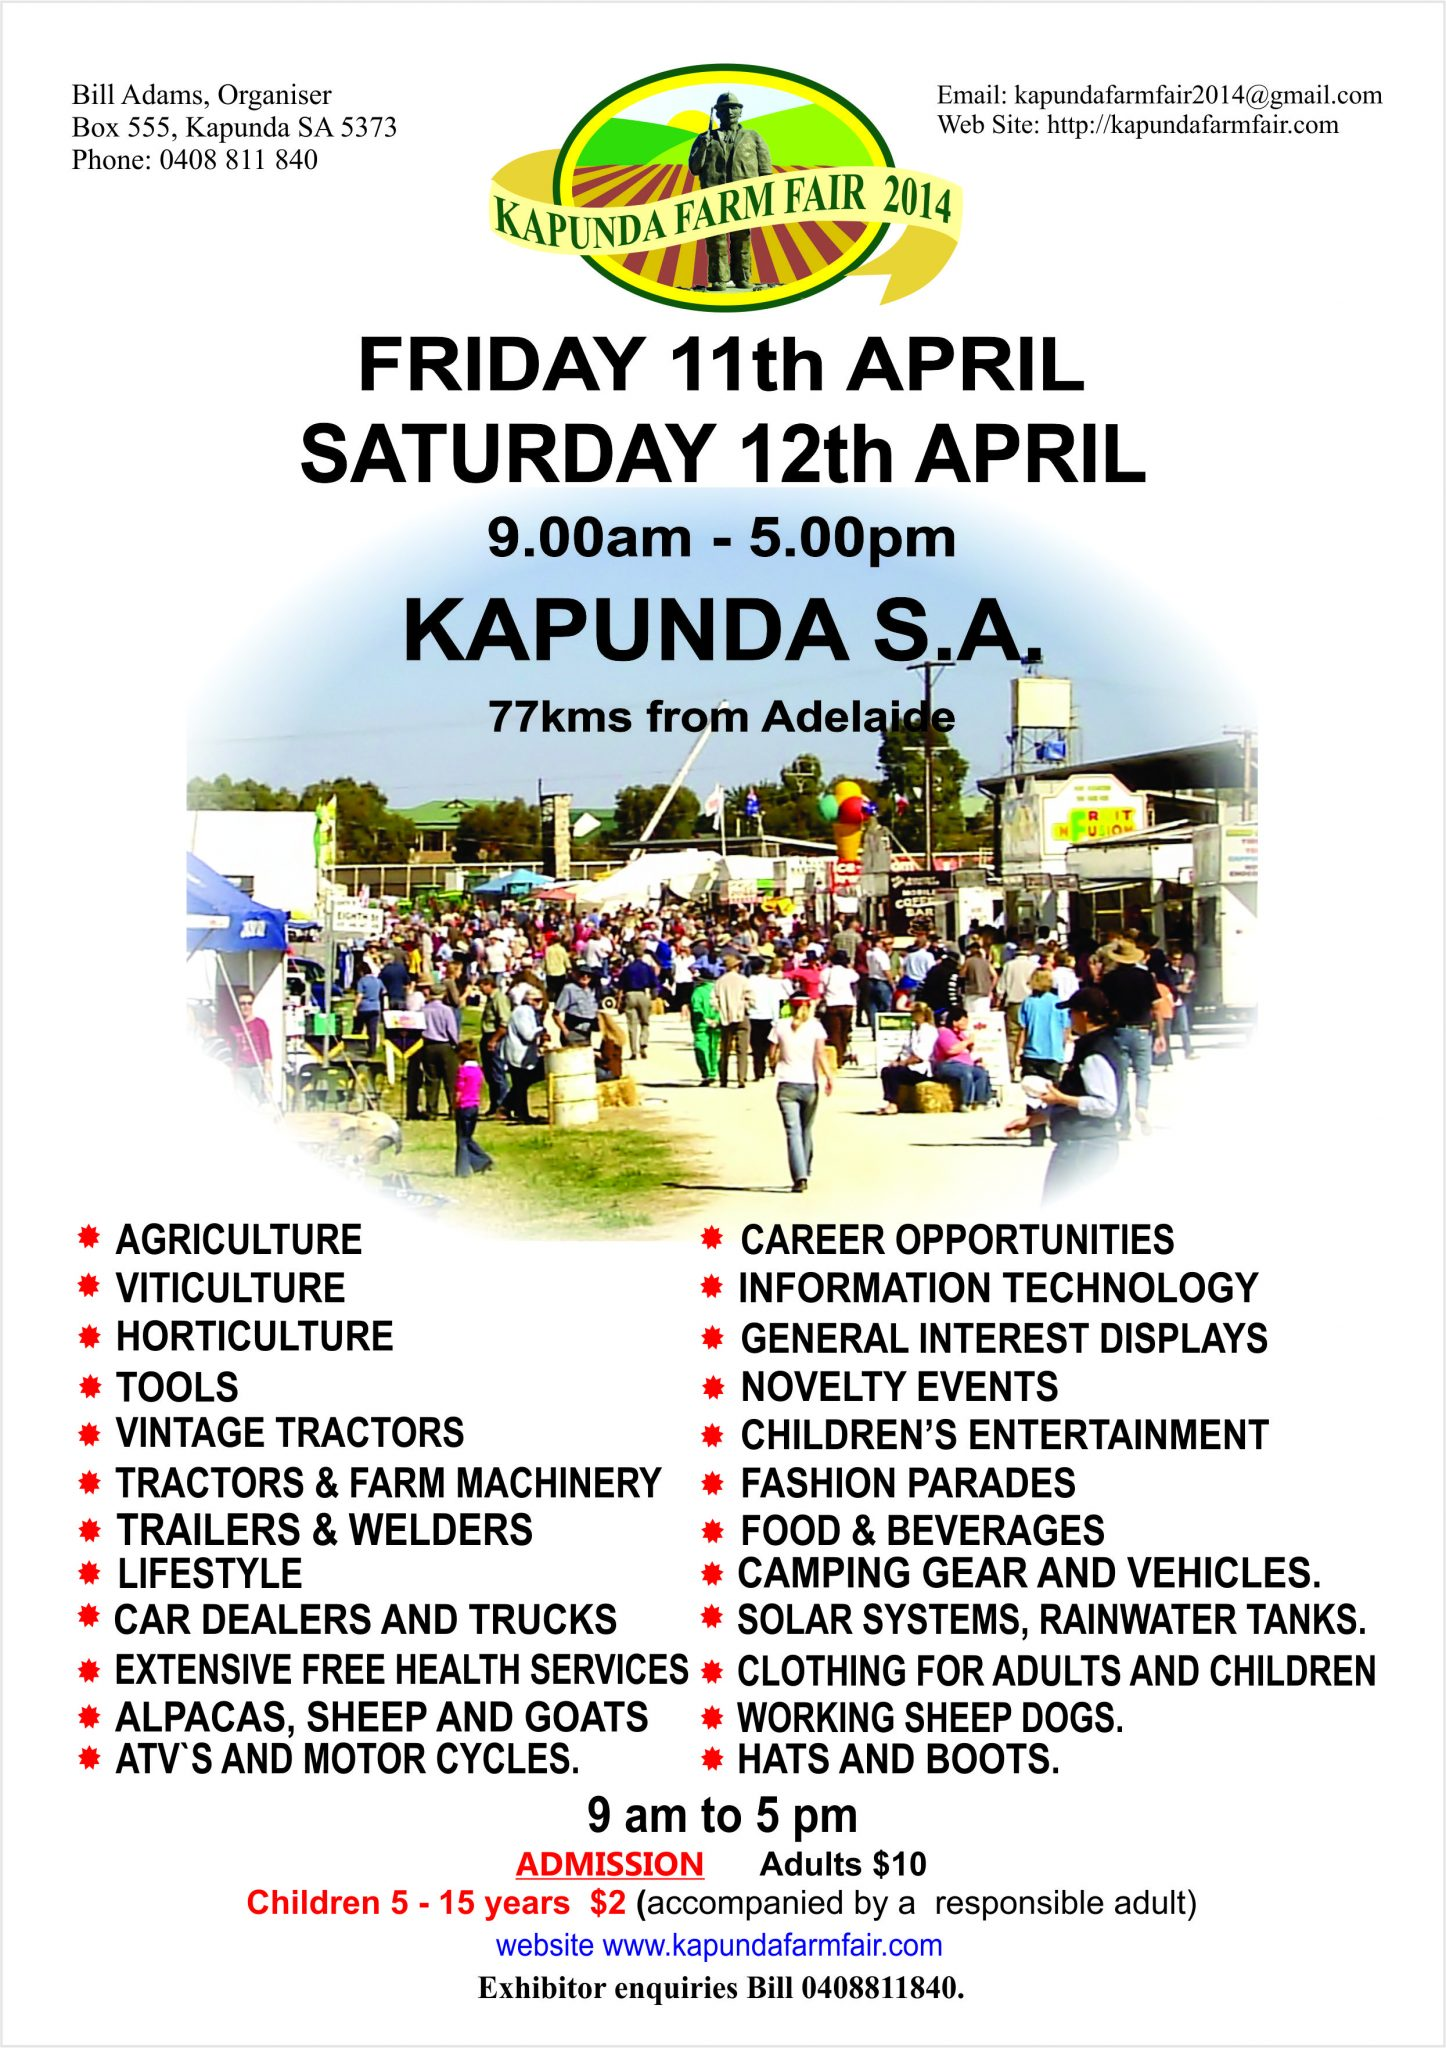 Kapunda Farm Fair